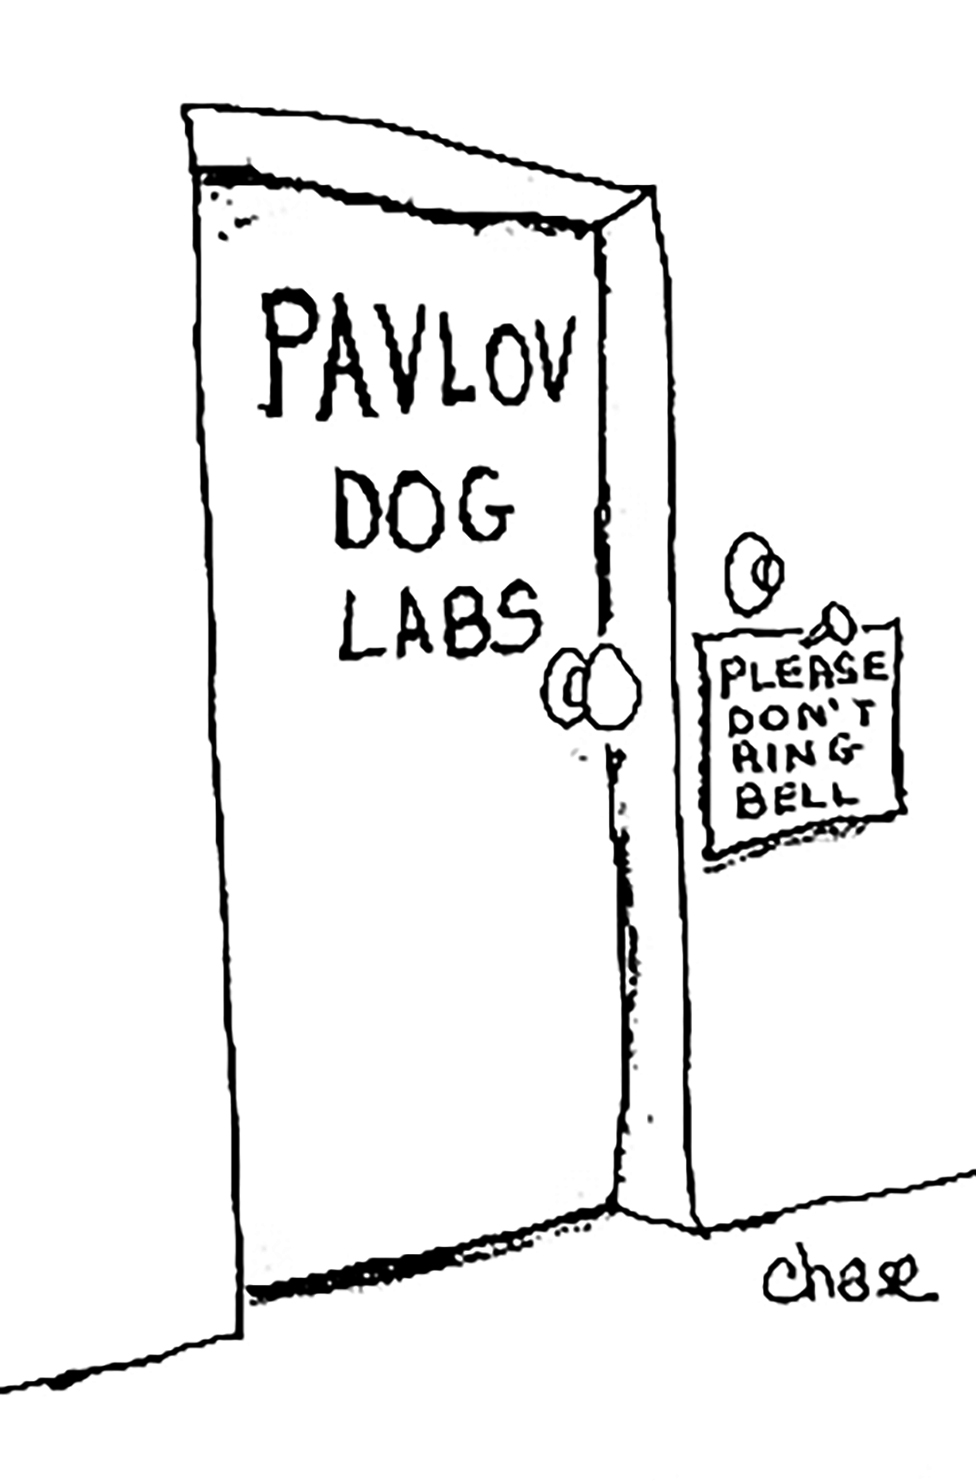 Pavlov Dog Labs